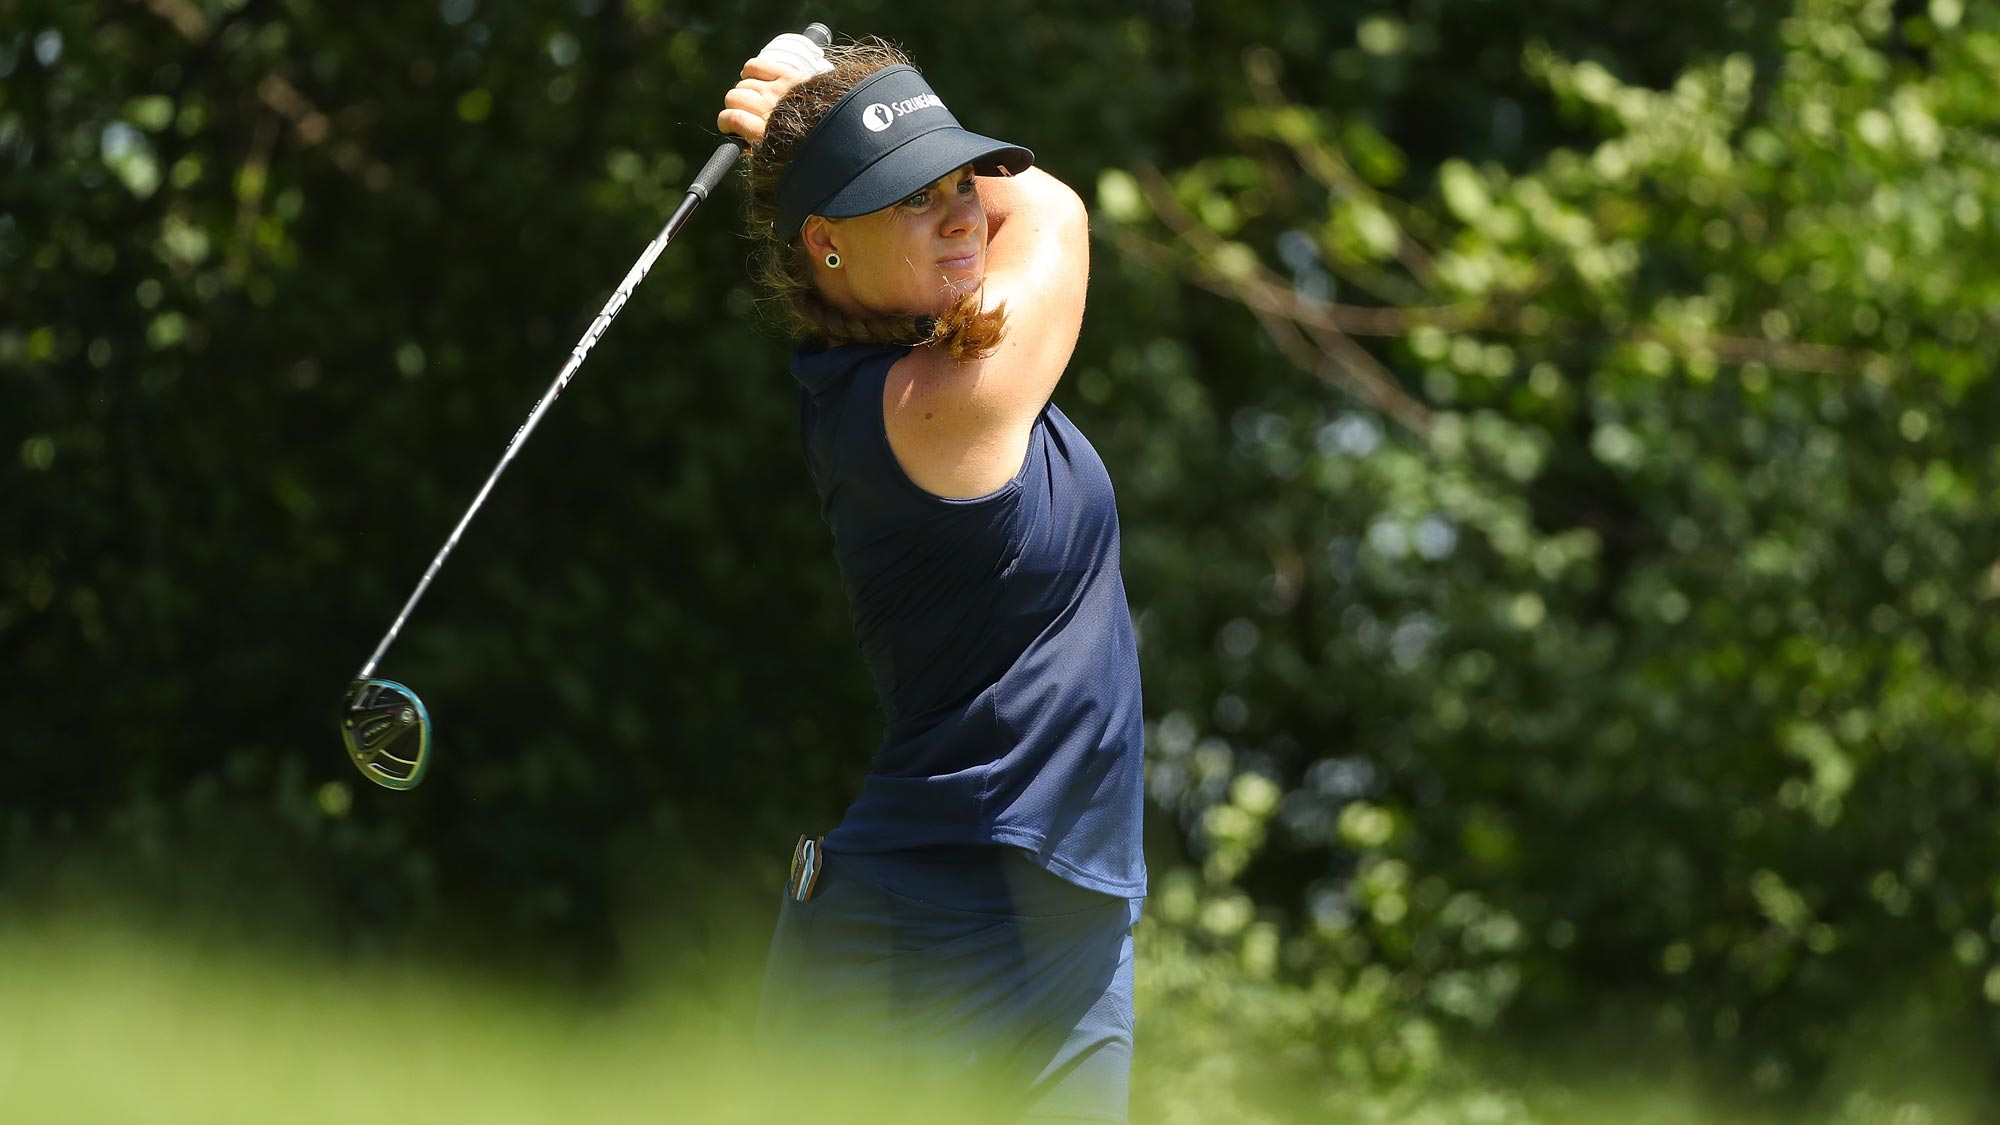 Dani Holmqvist of Sweden watches her drive on the forth hole during the third round of the 2018 KPMG Women's PGA Championship